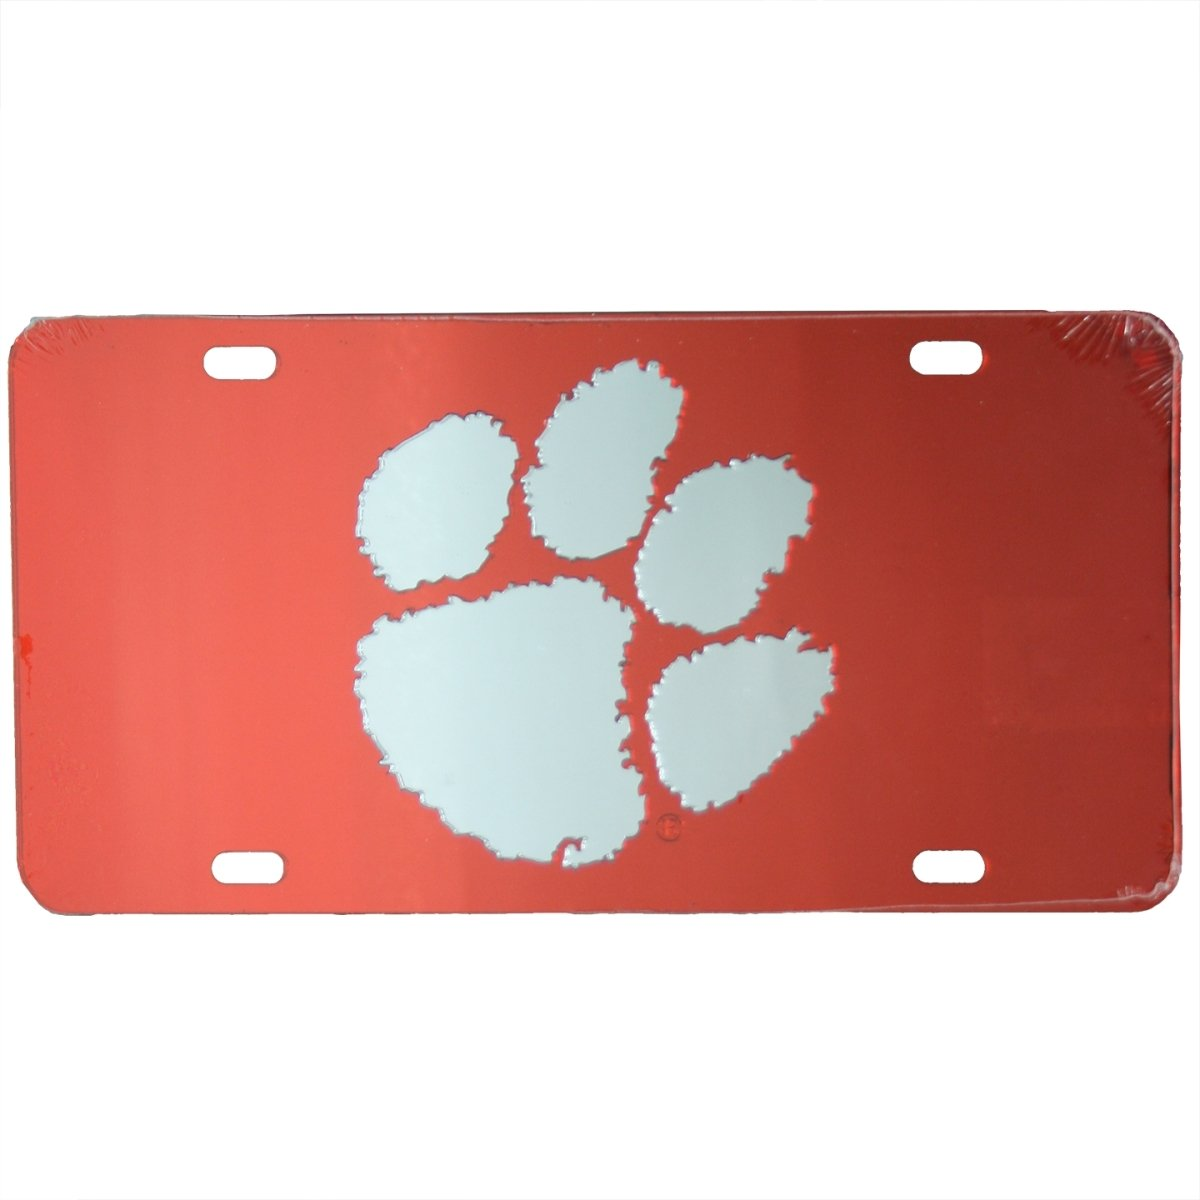 Car Tag Laser Cut Orange With Silver Paw - Mr. Knickerbocker